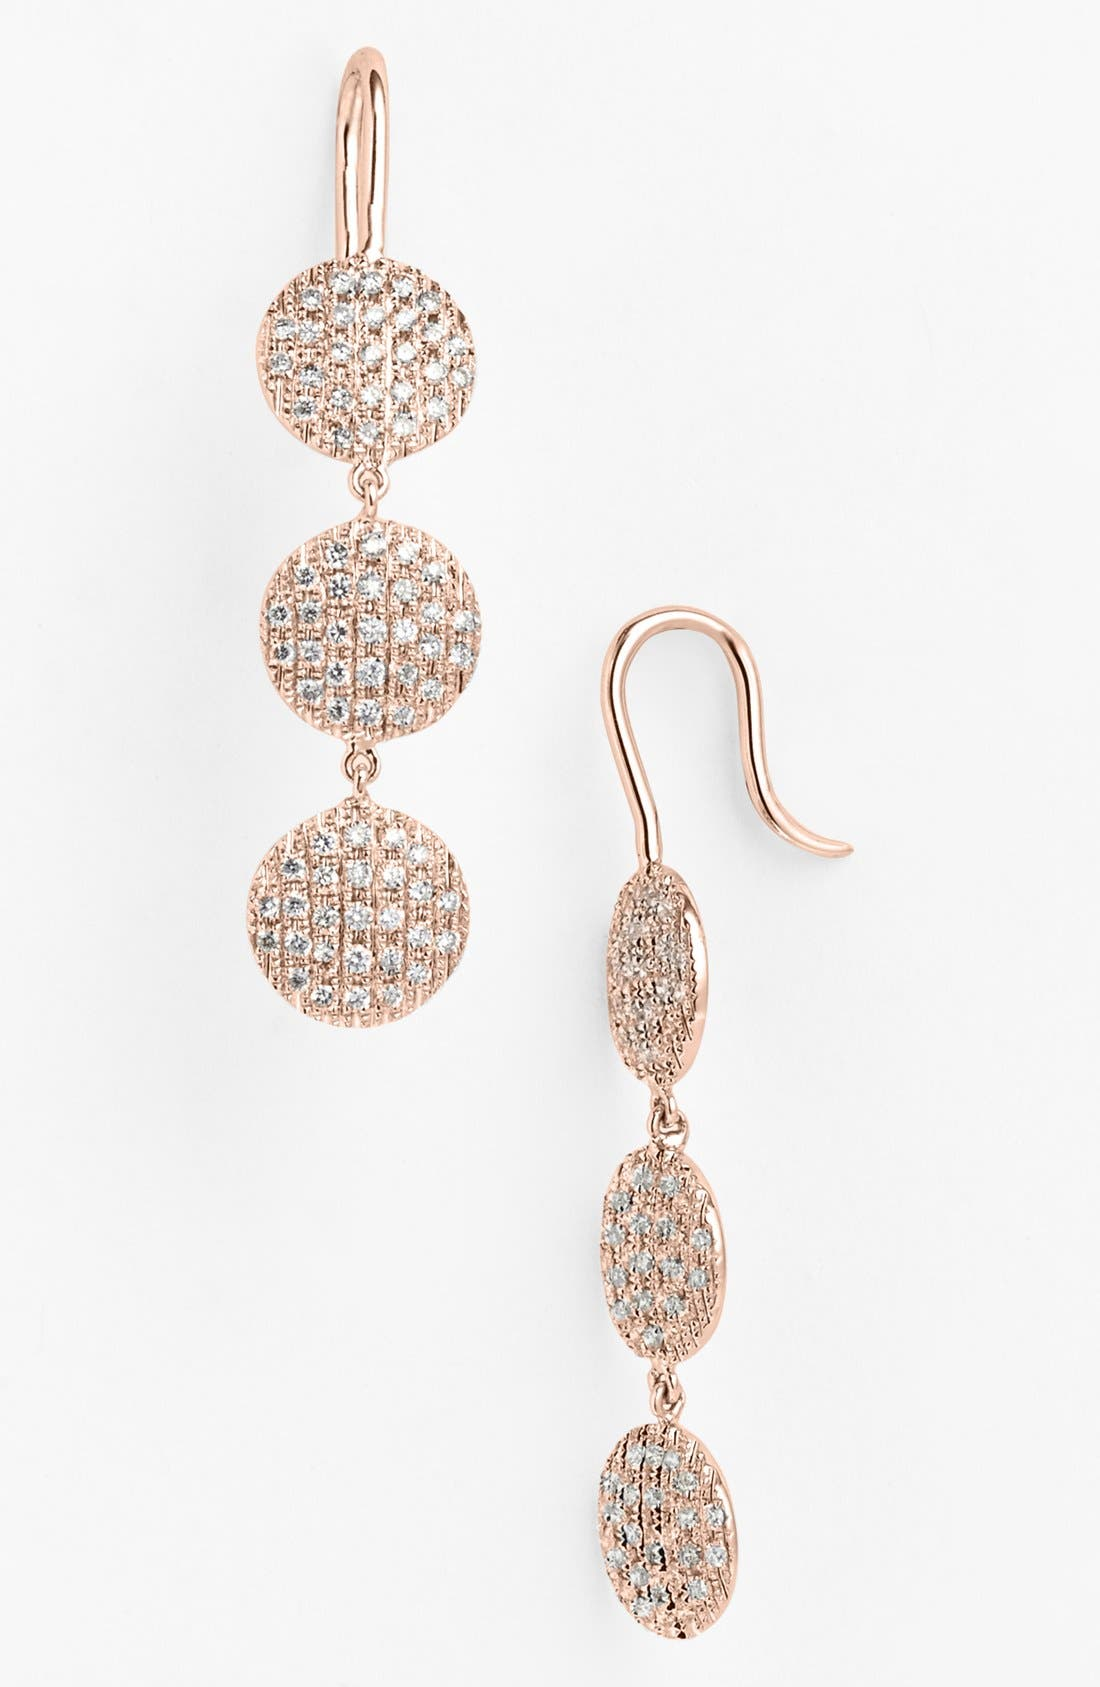 Alternate Image 1 Selected - Dana Rebecca Designs 'Lauren Joy' Diamond Drop Earrings